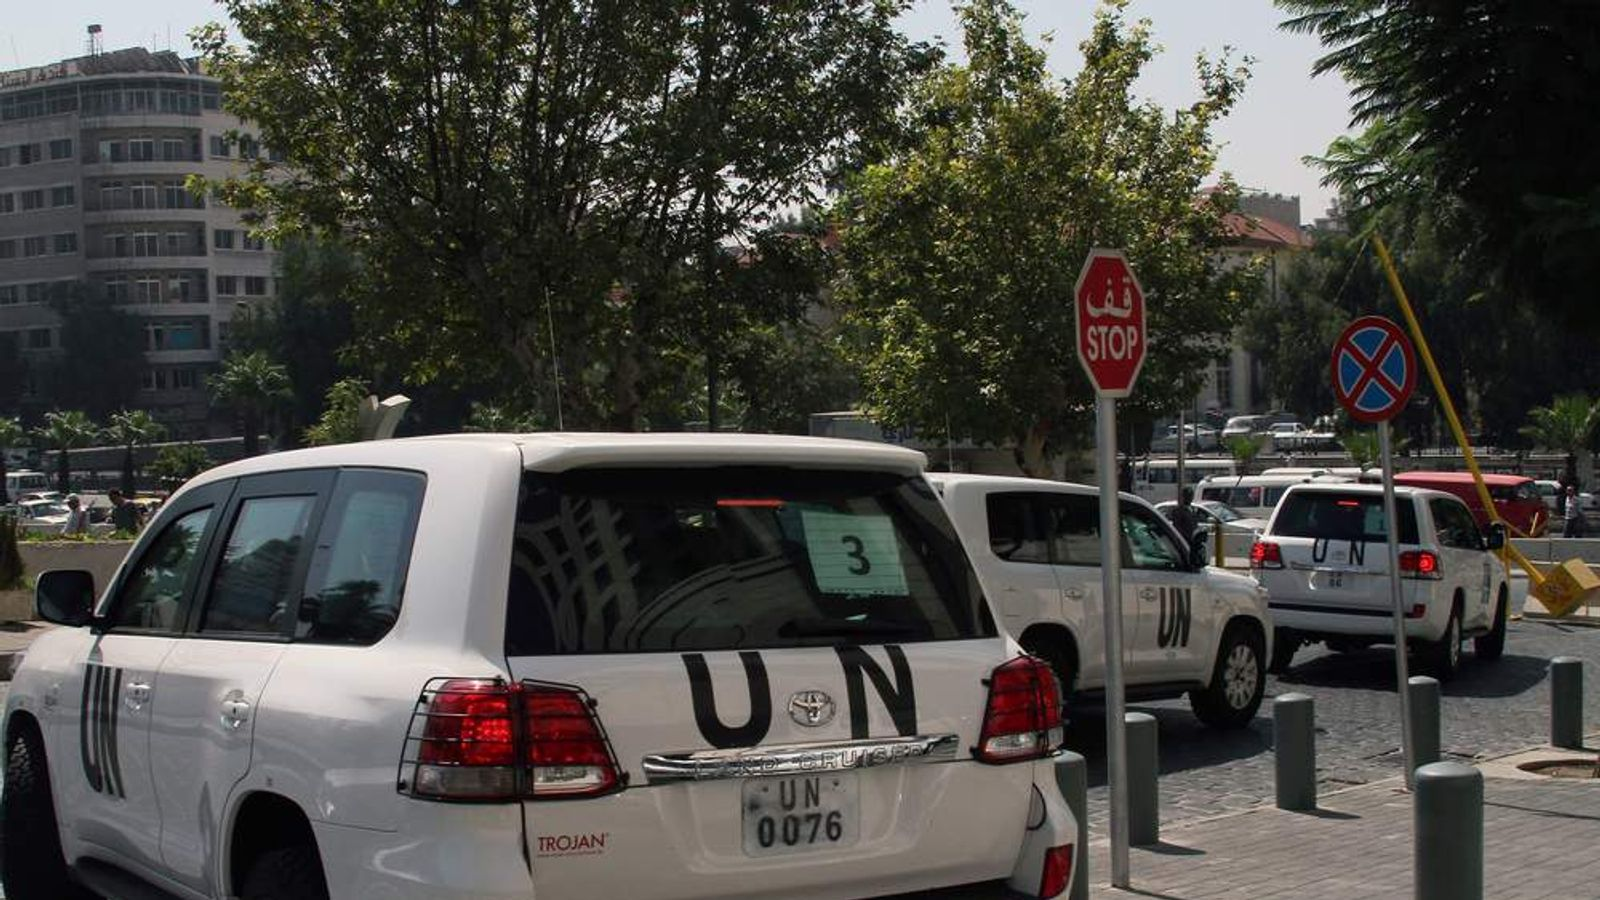 A convoy of United Nations (UN) vehicles leave a hotel in Damascus, Syria